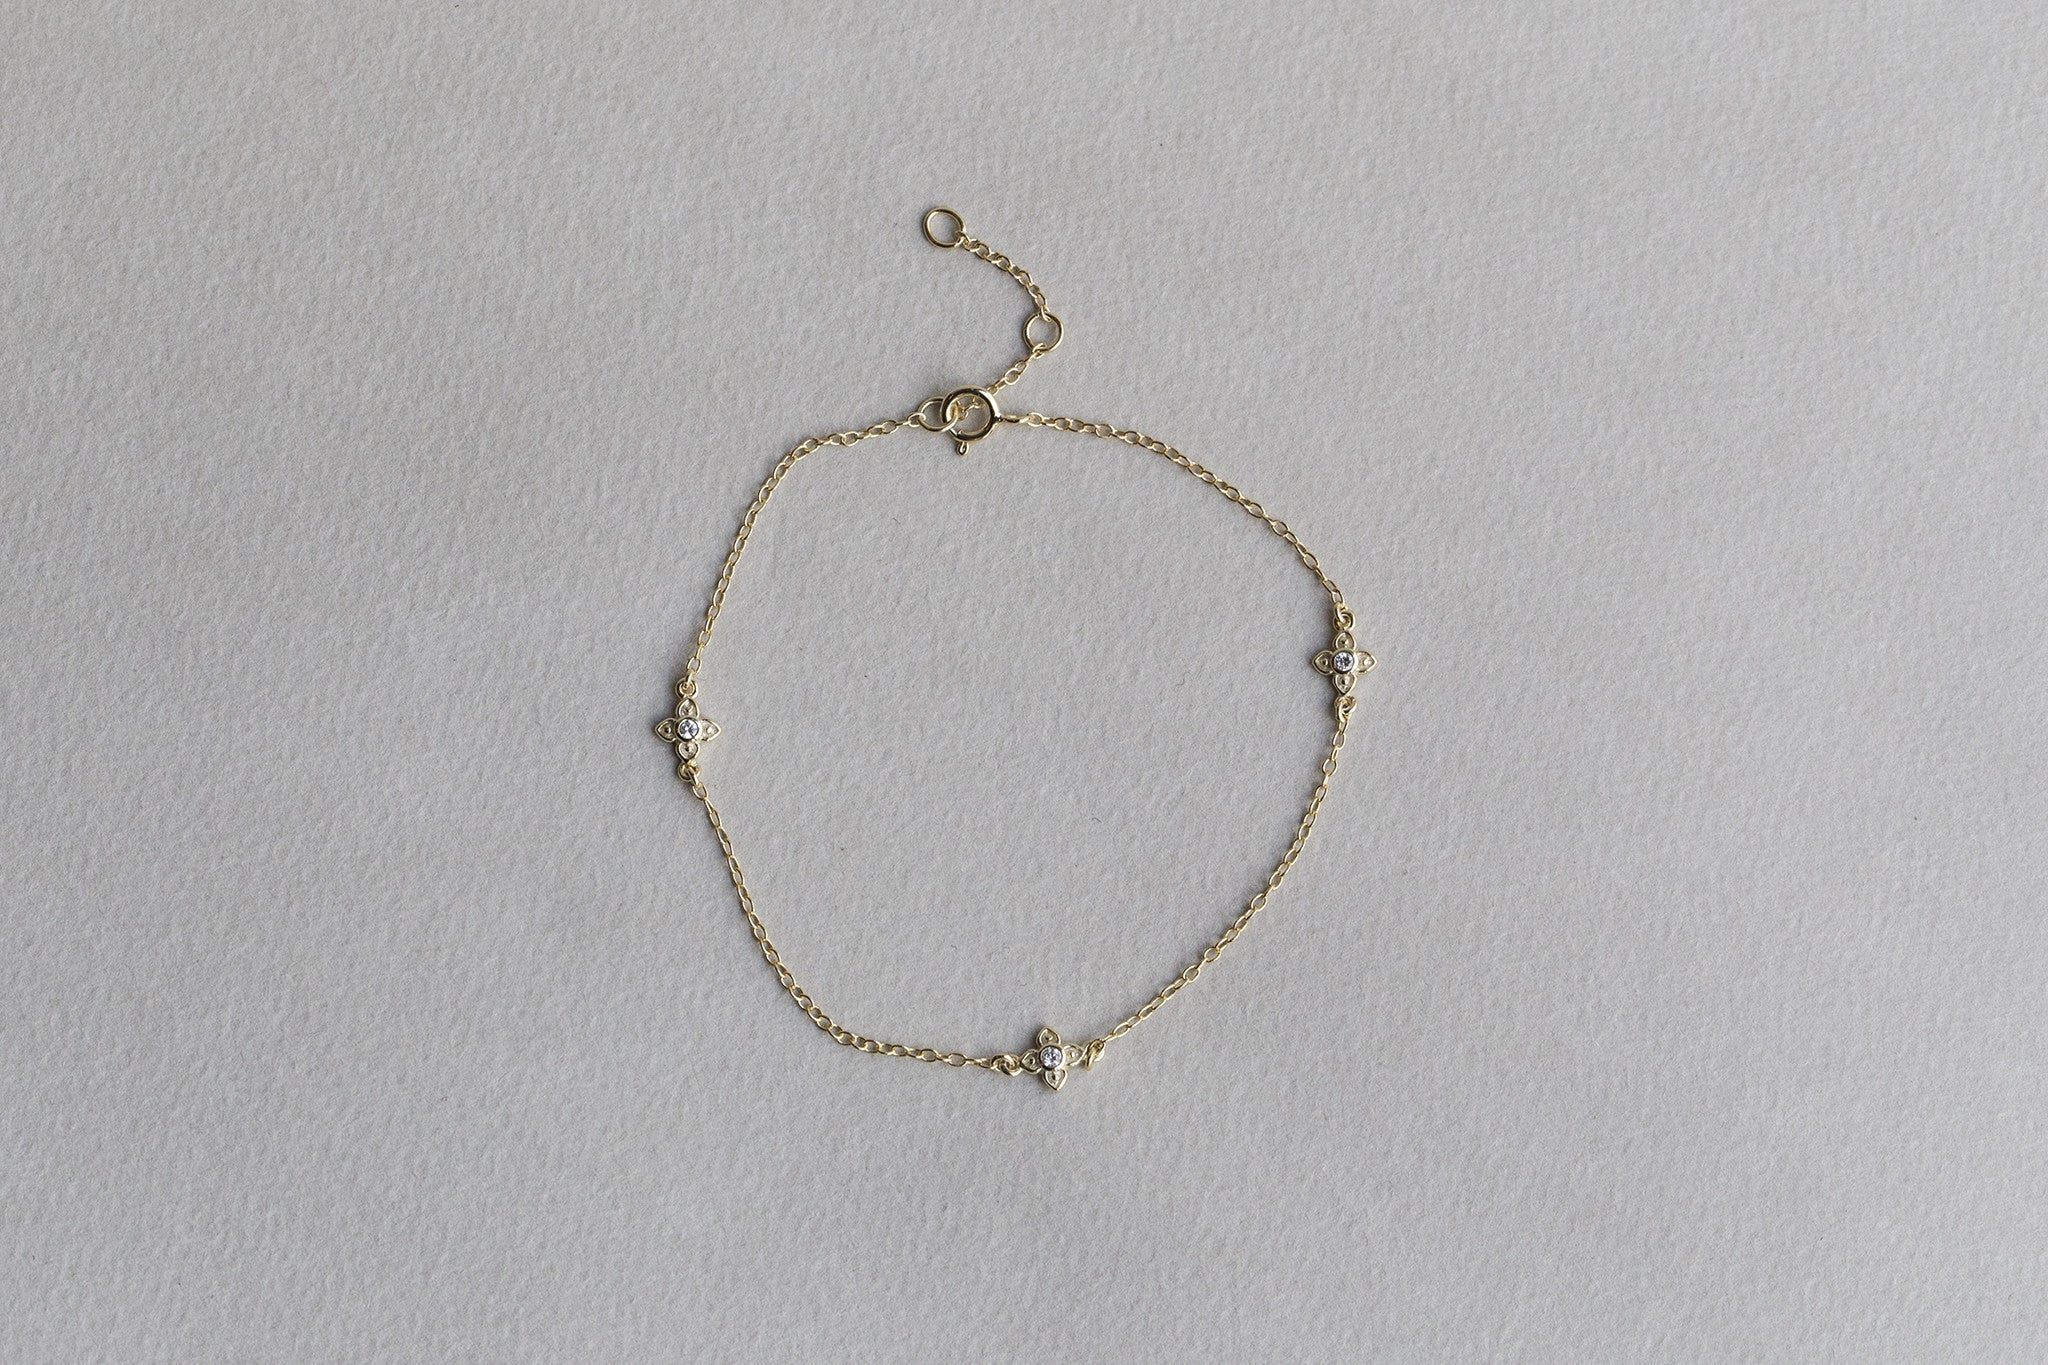 delicate clover bracelet with cubic zirconia middles